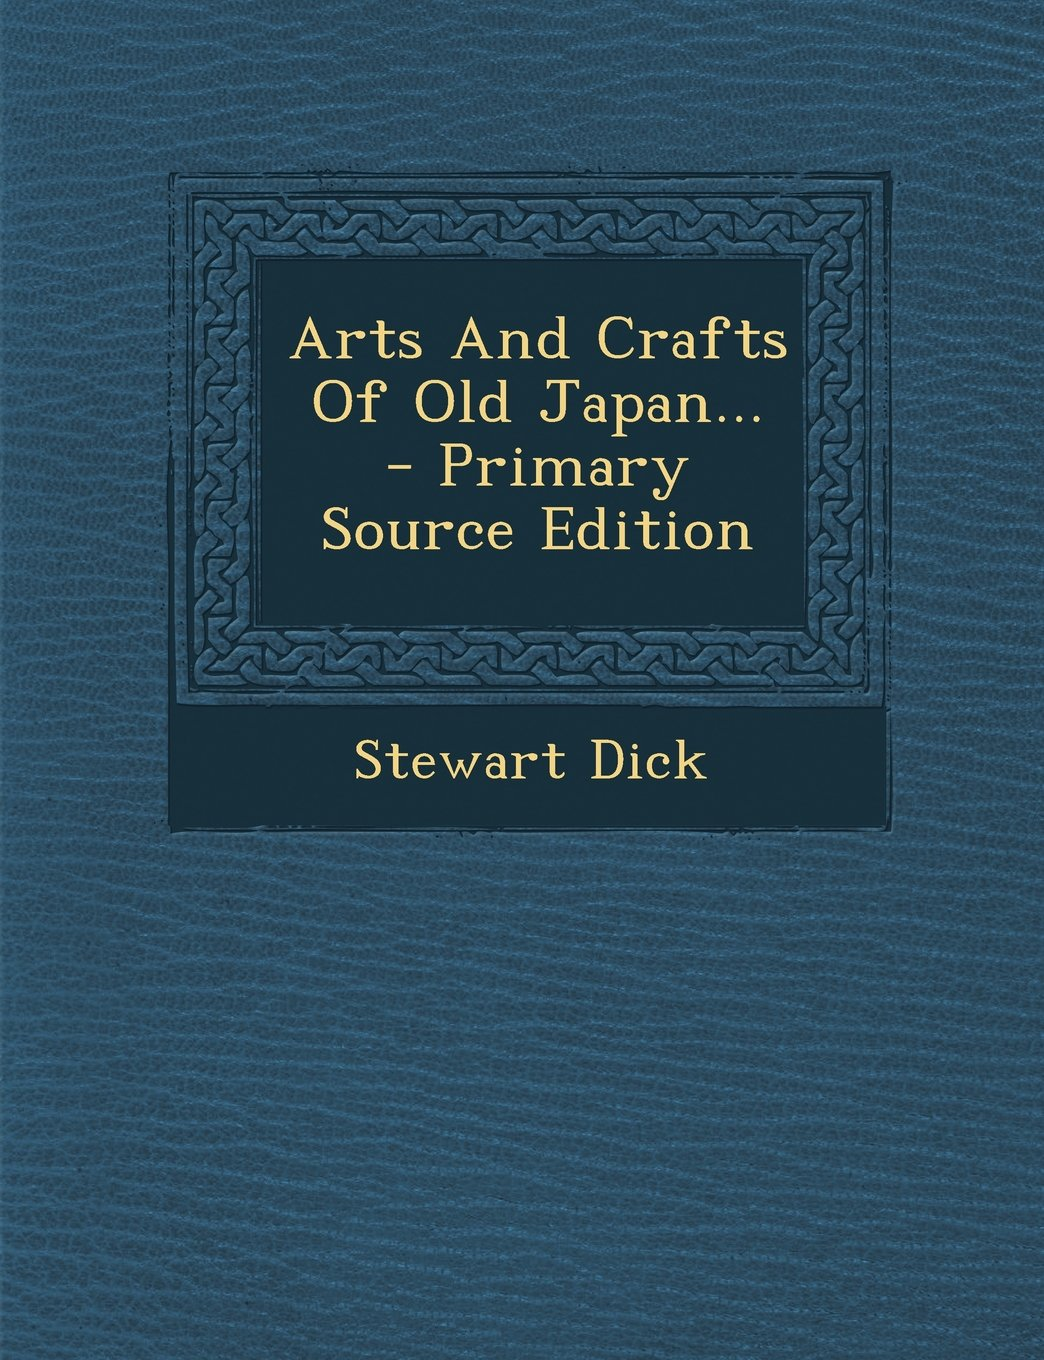 Arts And Crafts Of Old Japan... - Primary Source Edition pdf epub